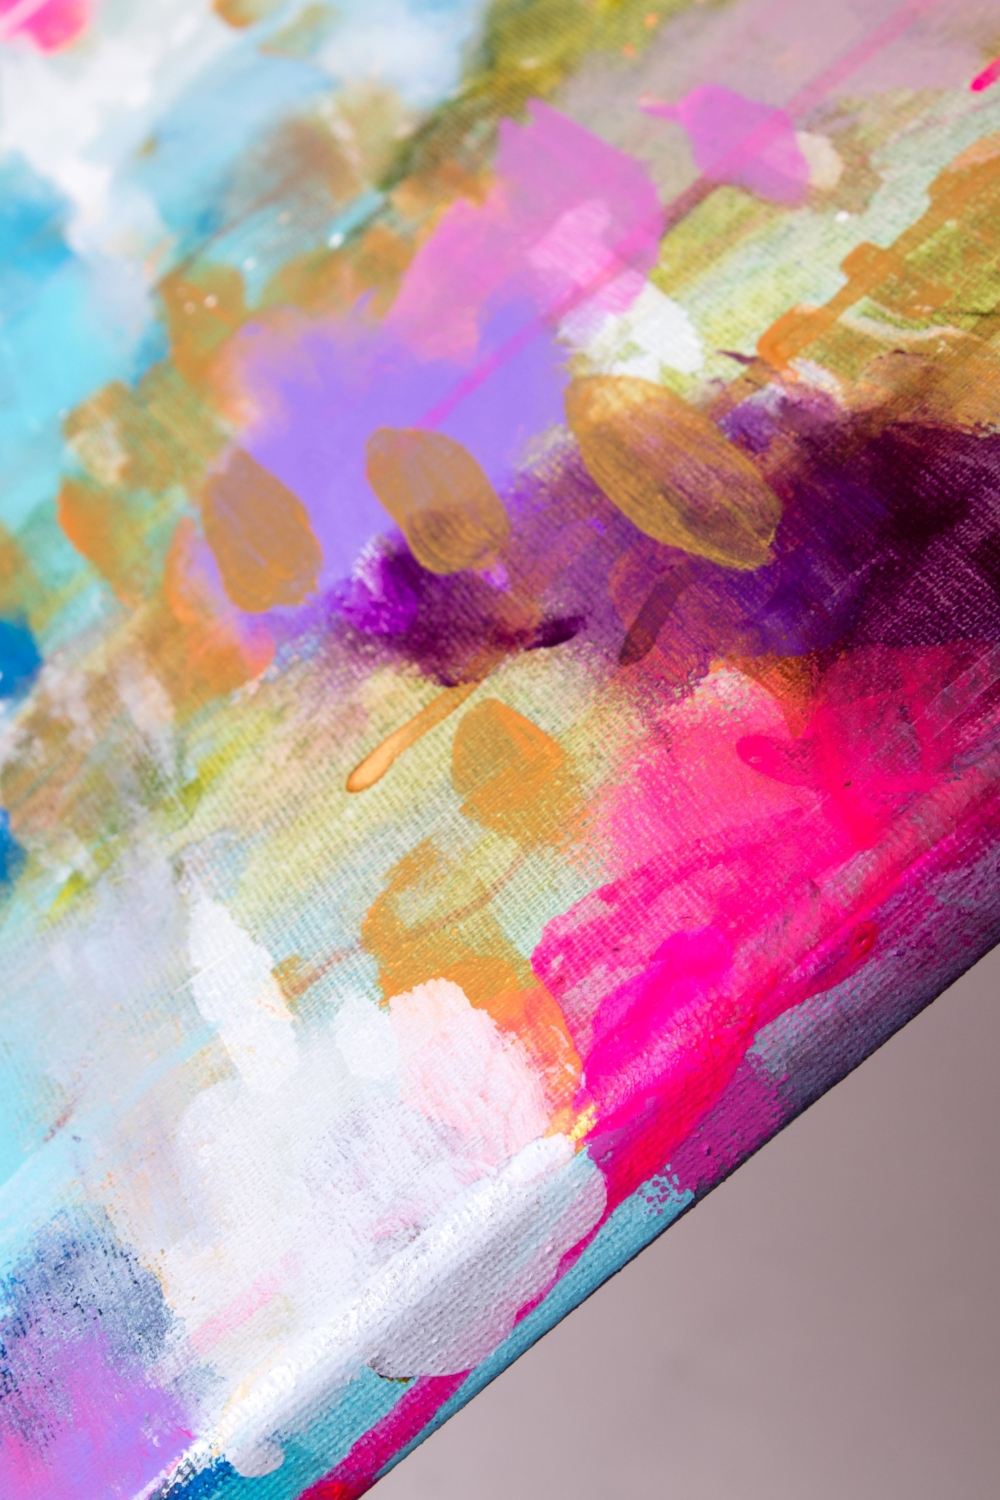 DETAIL SHOT OF NEW PAINTING